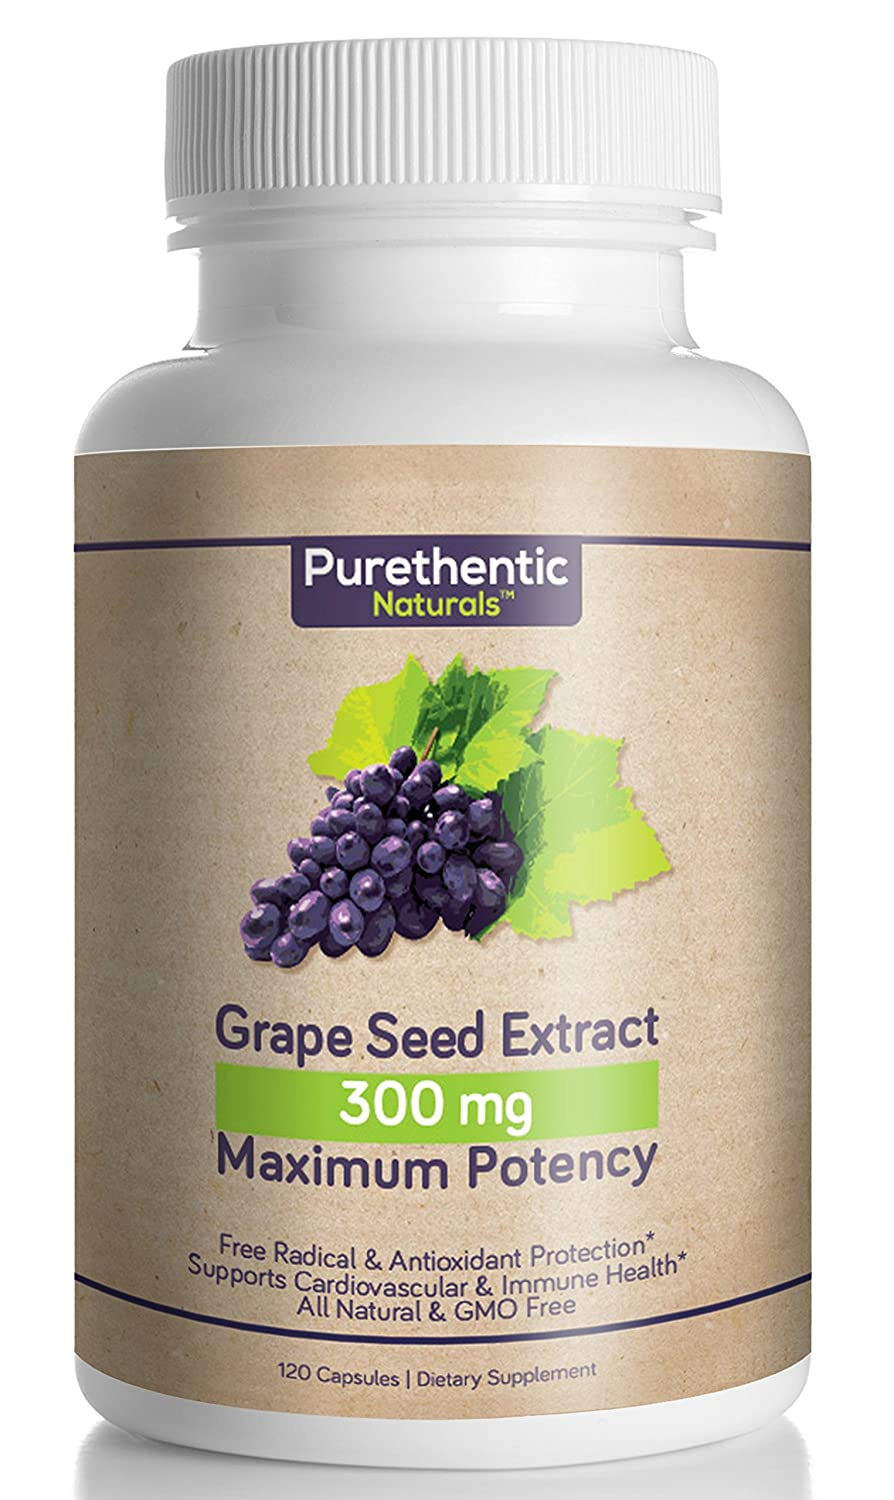 Grape Seed Extract Capsules 300mg, 120 Count, 8 Month Supply, Natural – High Potency – 95 Proanthocyanidins Purethentic Naturals, Pack of 2